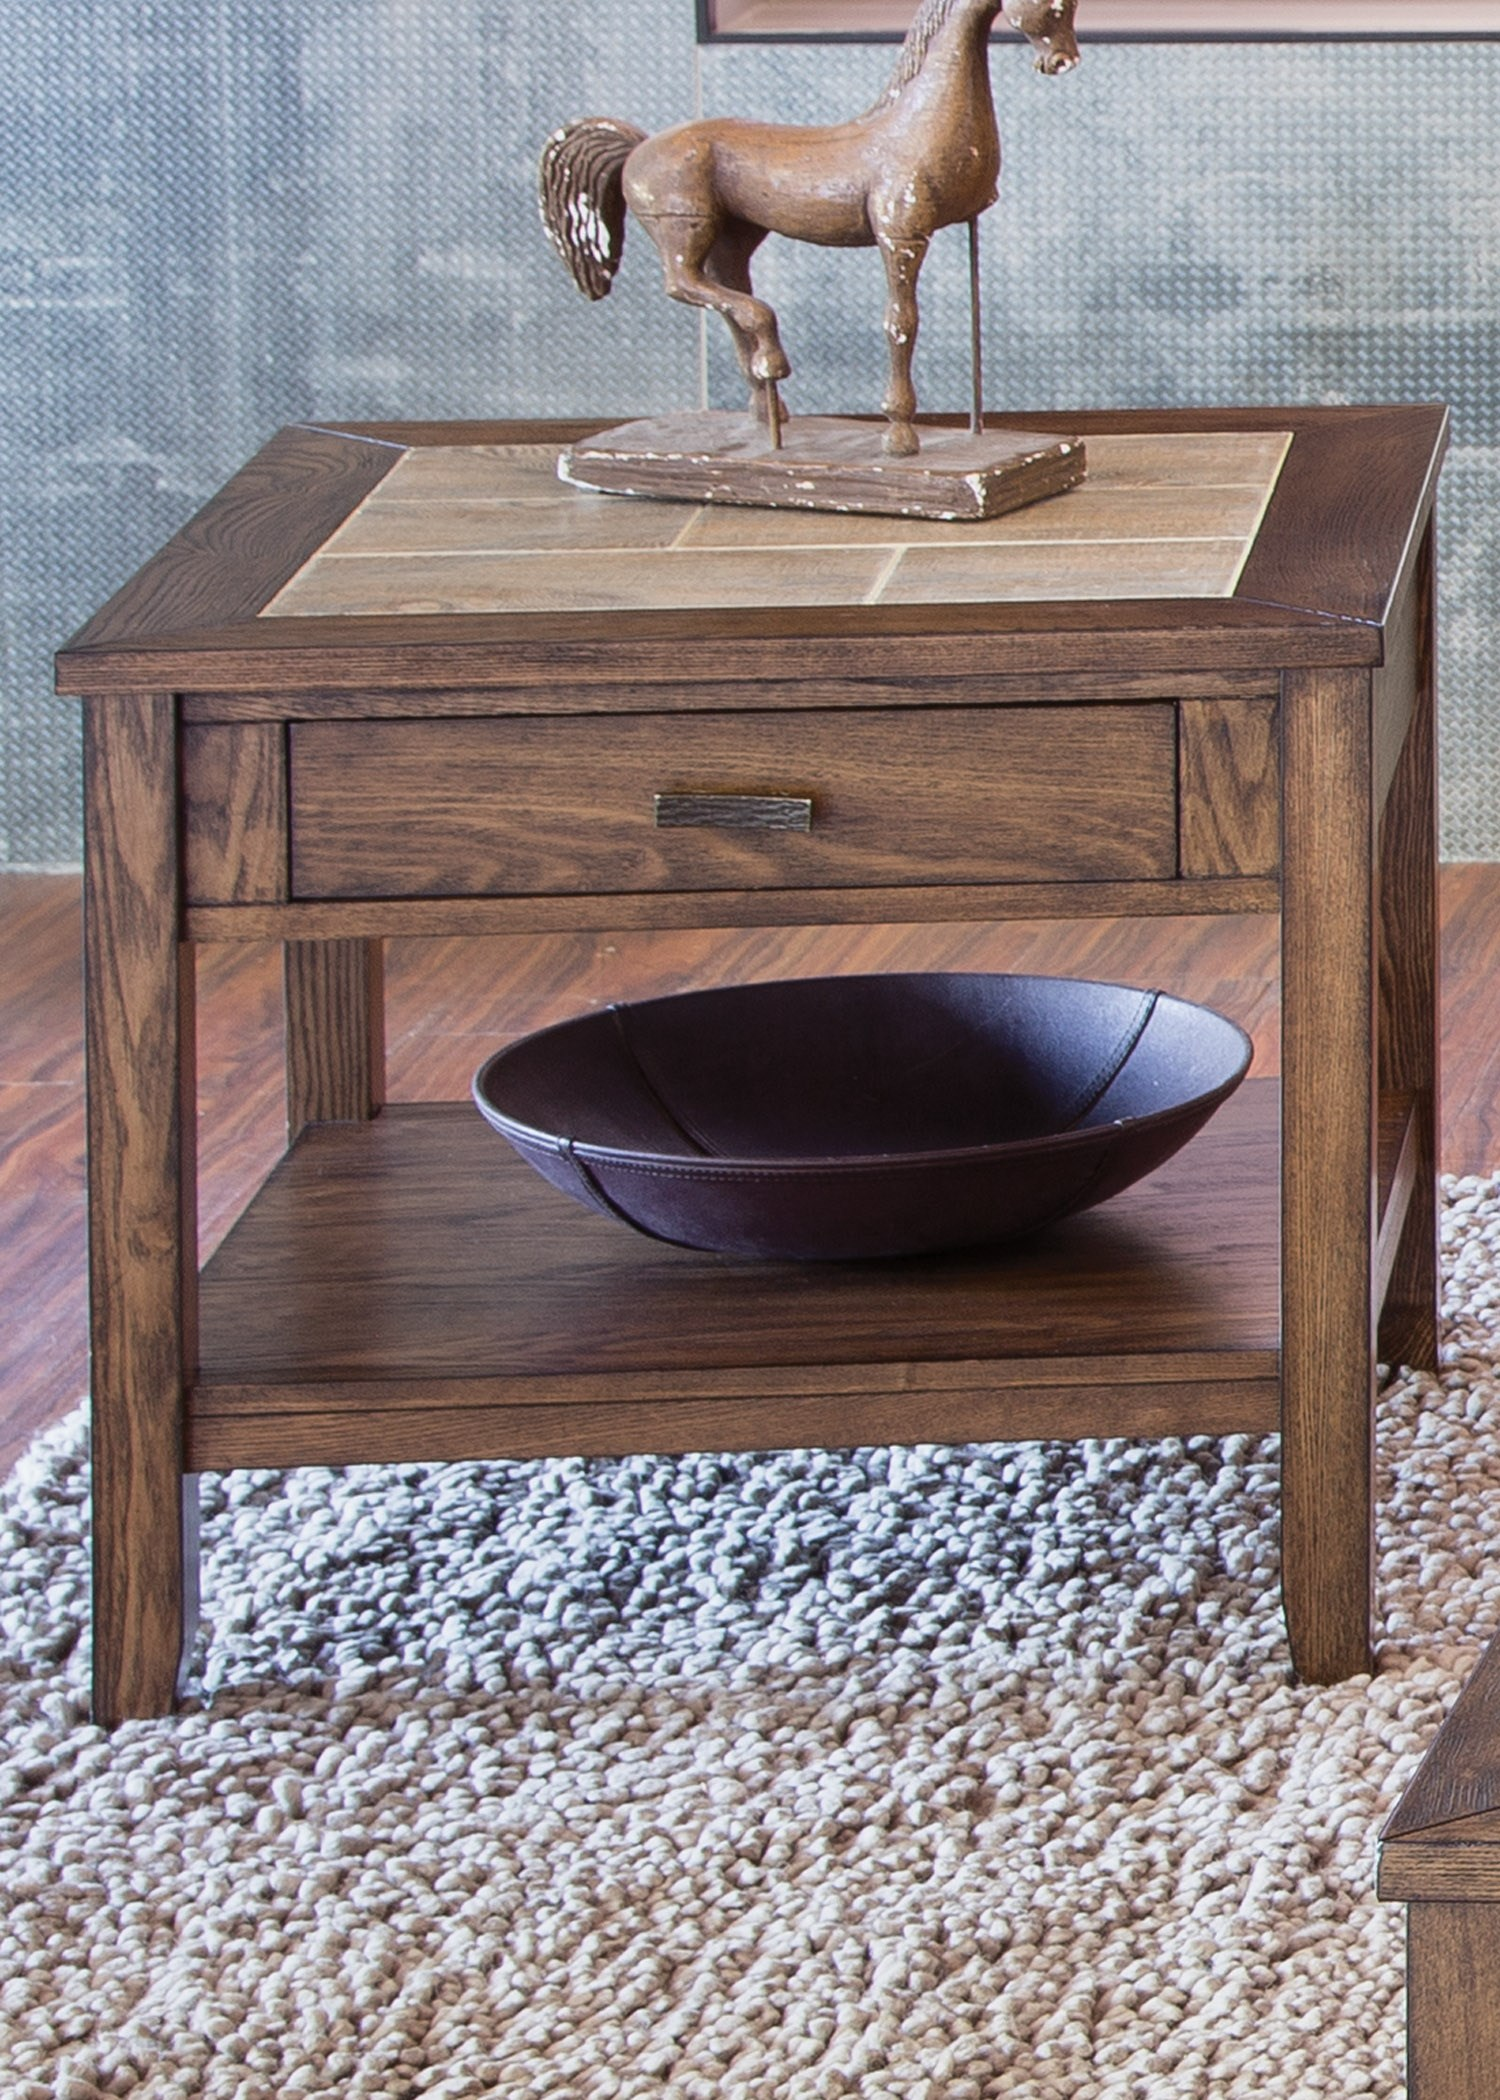 End Table with Ceramic Tile Top